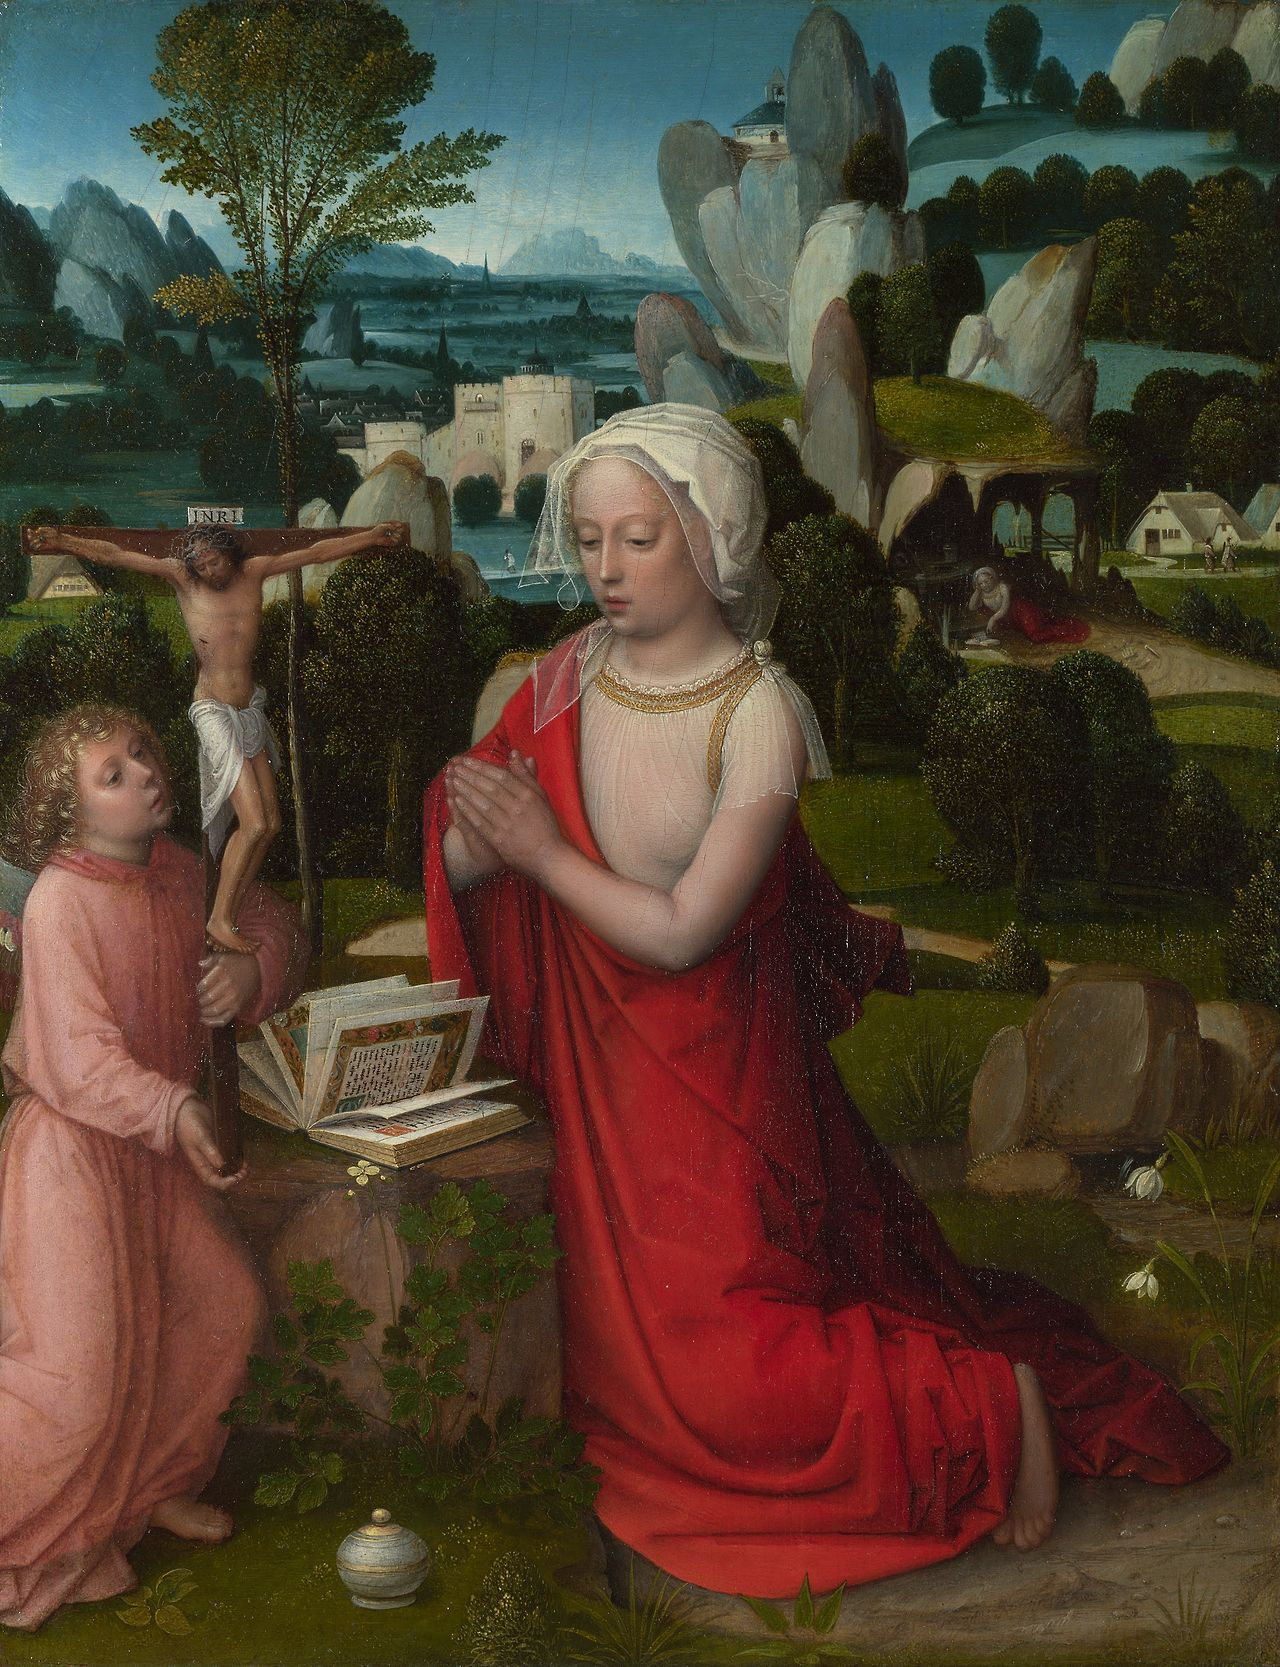 The Magdalen in a Landscape (perhaps about 1510-25). Adriaen Ysenbrandt (Belgian, 1480-1551). Oil on oak. National Gallery, London. Mary Magdalene is at prayer before a book and a crucifix which is held by an angel; the jar containing the ointment with which she anointed Christ is in the foreground. She appears again in the right background reading in a cave. This is said to be an early work, possibly of about 1510-25.